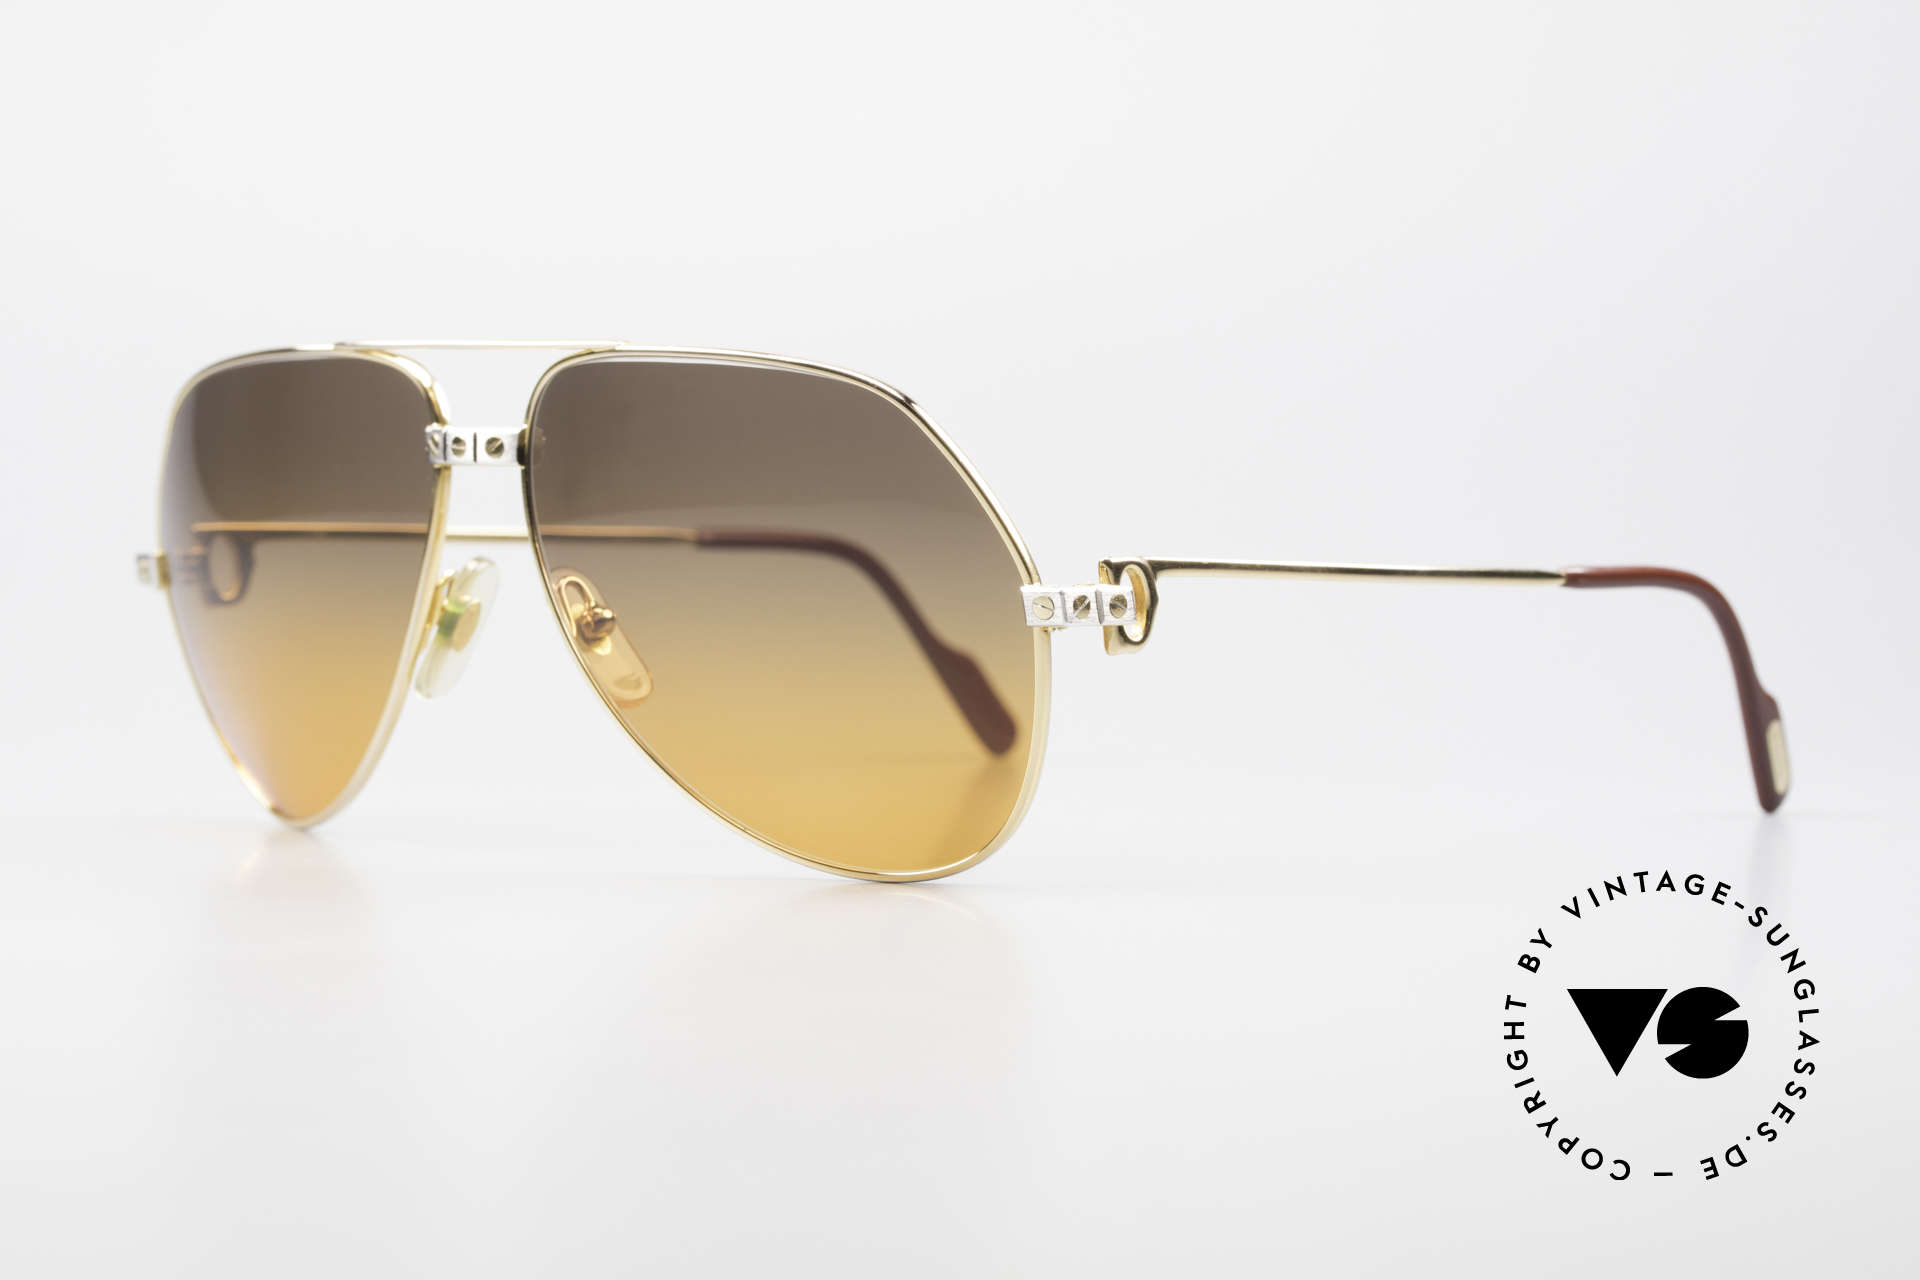 Cartier Vendome Santos - L Double Gradient Desert Storm, 22ct GOLD-PLATED frame in LARGE SIZE 62-14, 140!, Made for Men